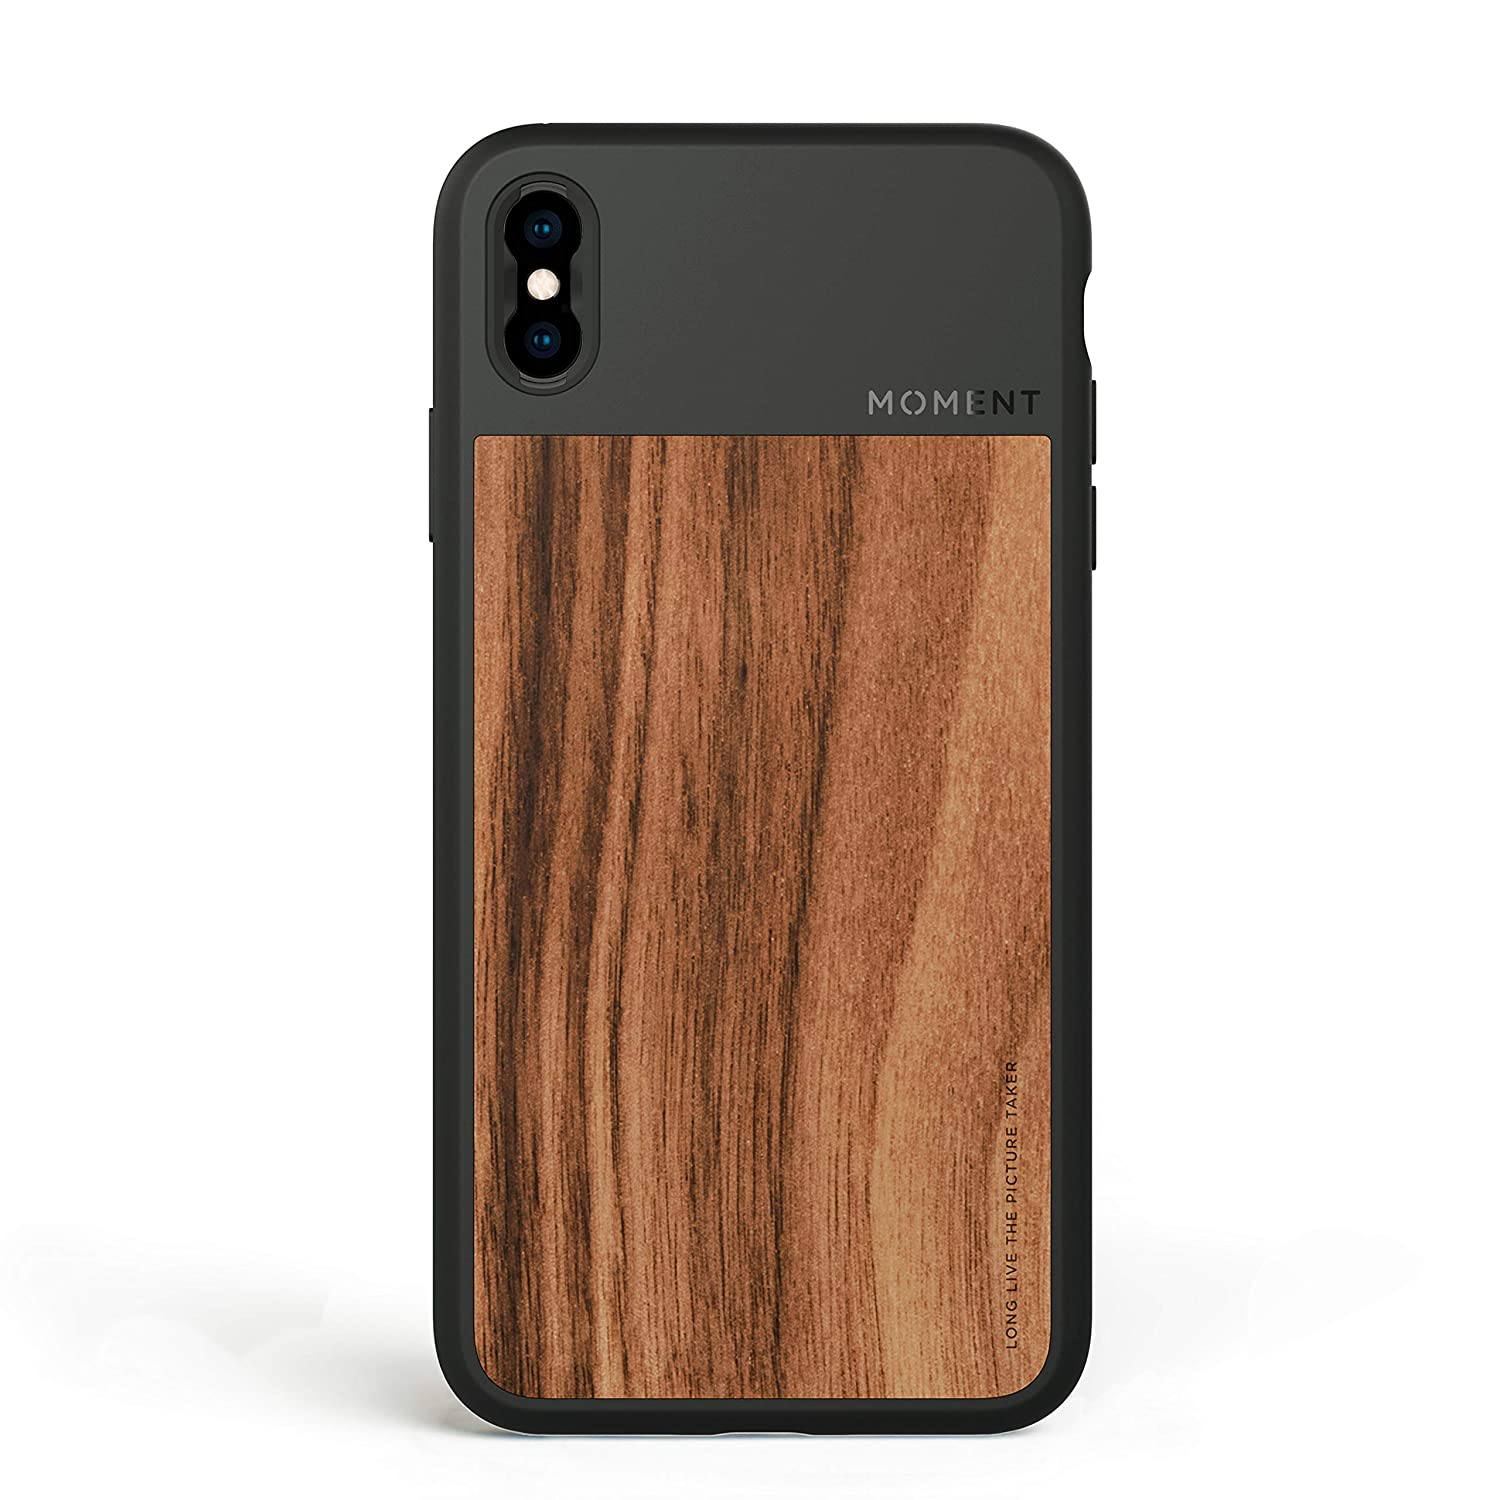 Funda de madera Para iPhone Xs Max, Moment (xmp)